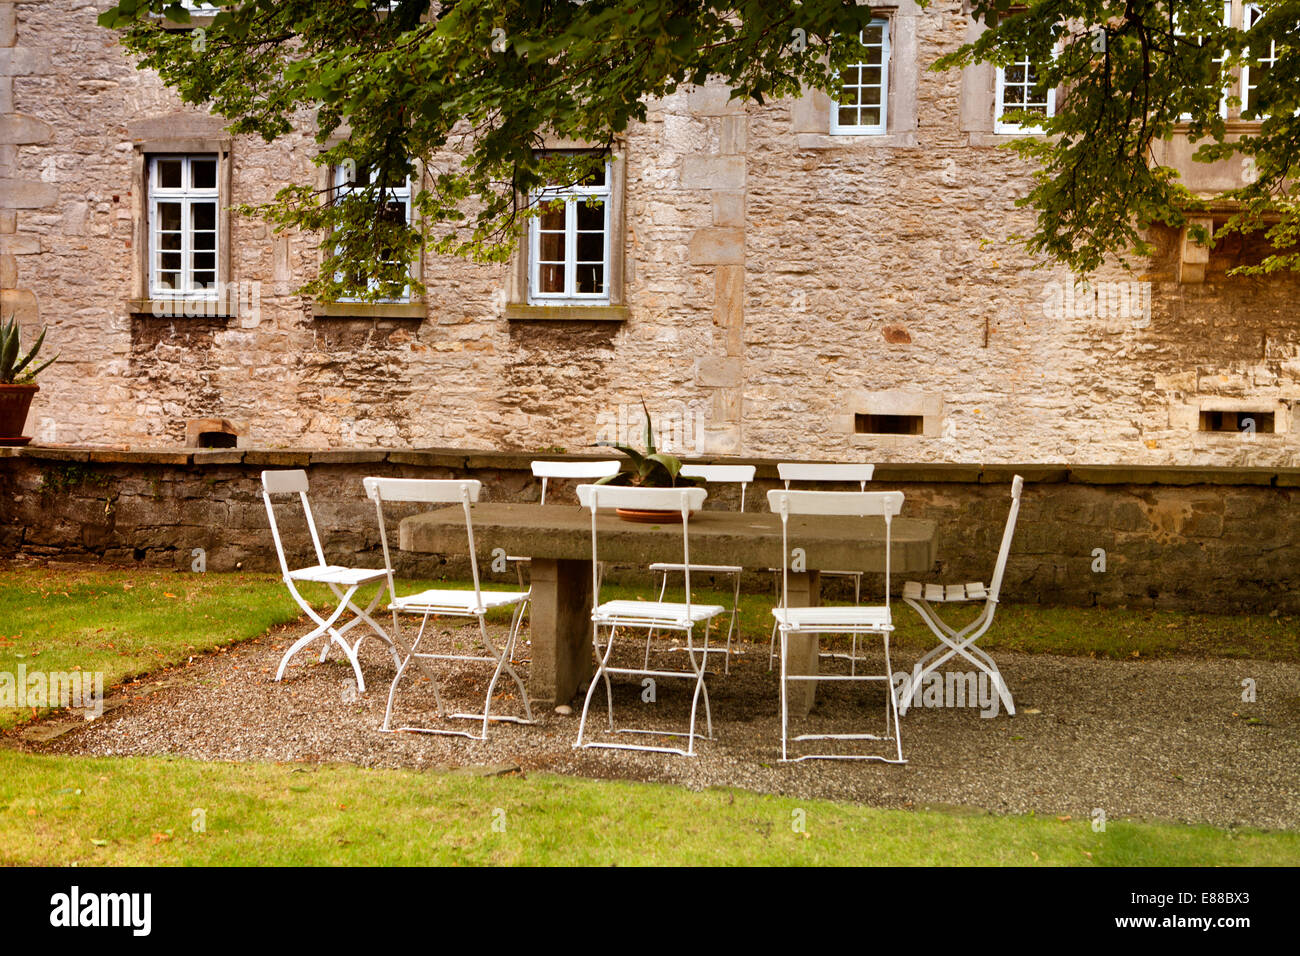 Chairs and tables outside, Schloss Huelsede, moated Castle in Huelsede, Weser-Renaissance, Lower Saxony, Germany, - Stock Image